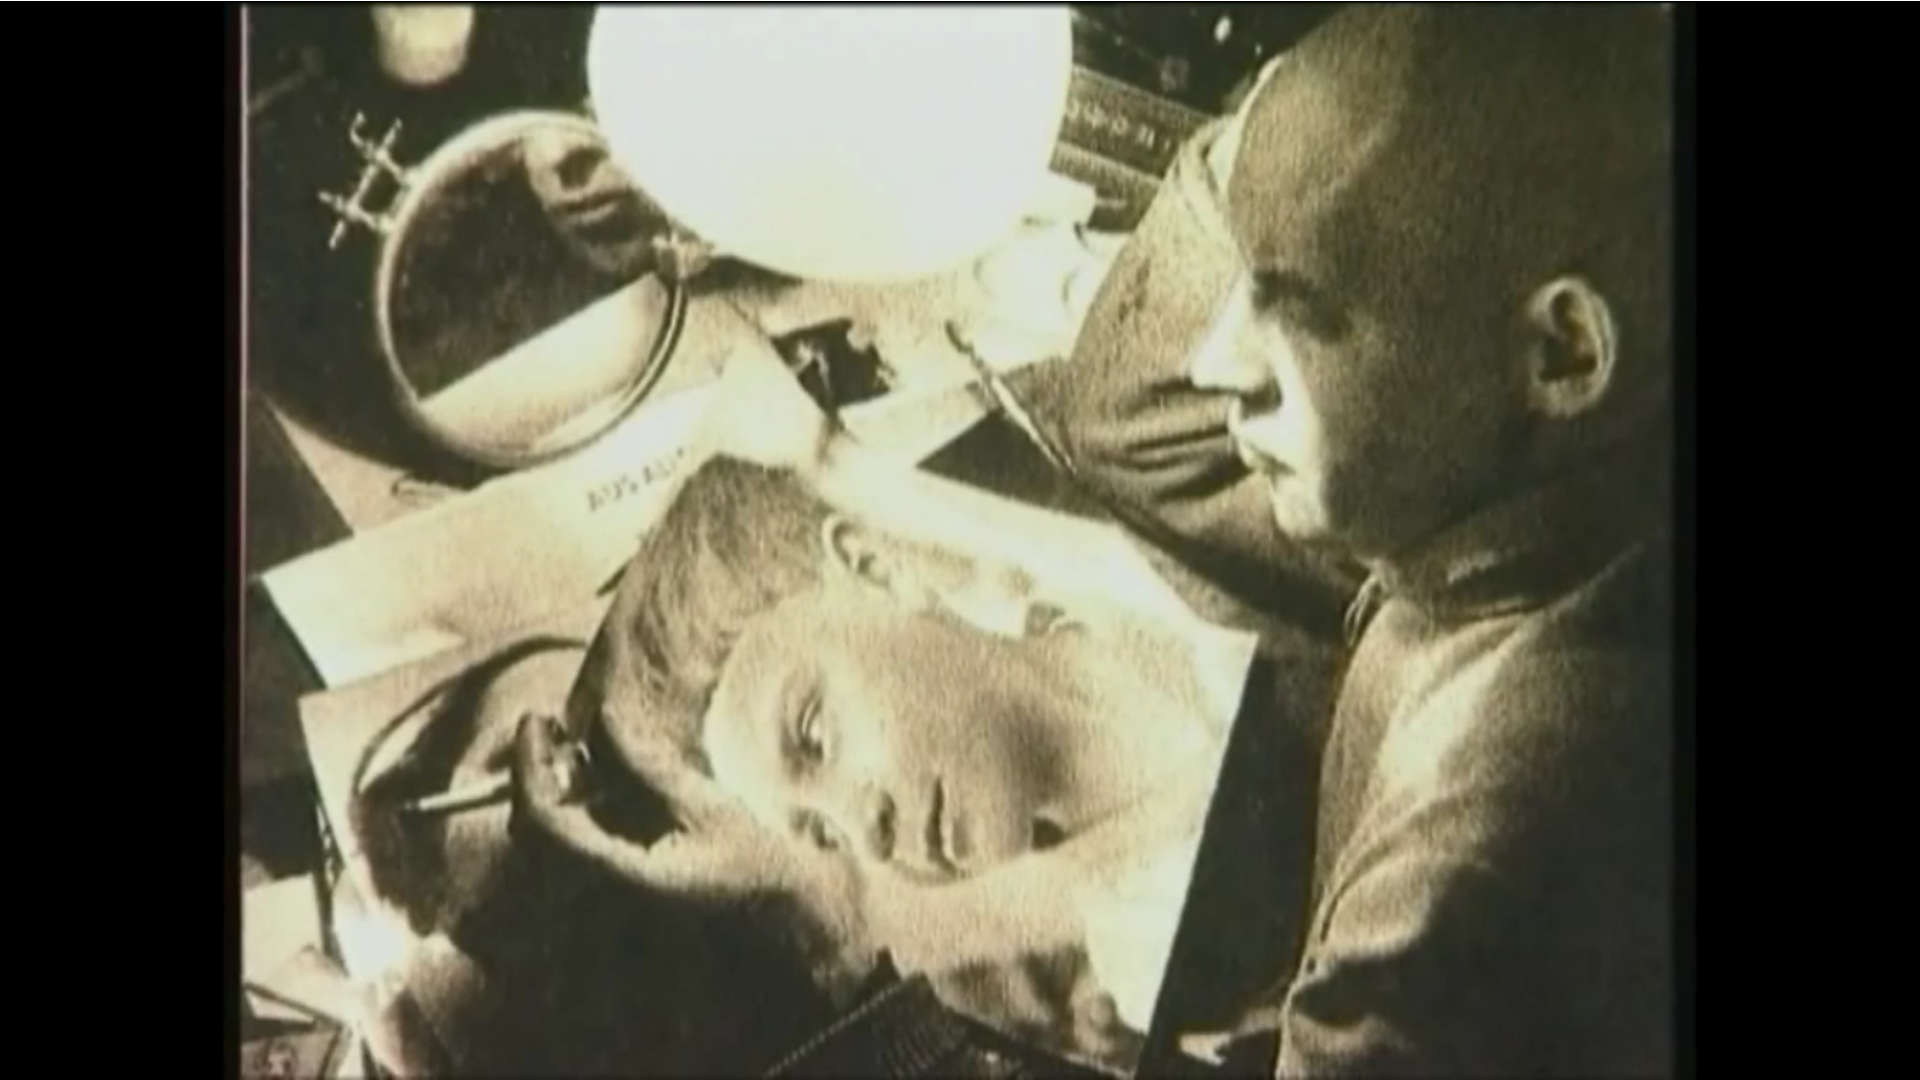 Watch Full Movie - Alexander Rodchenko and The Russian Avant-Garde